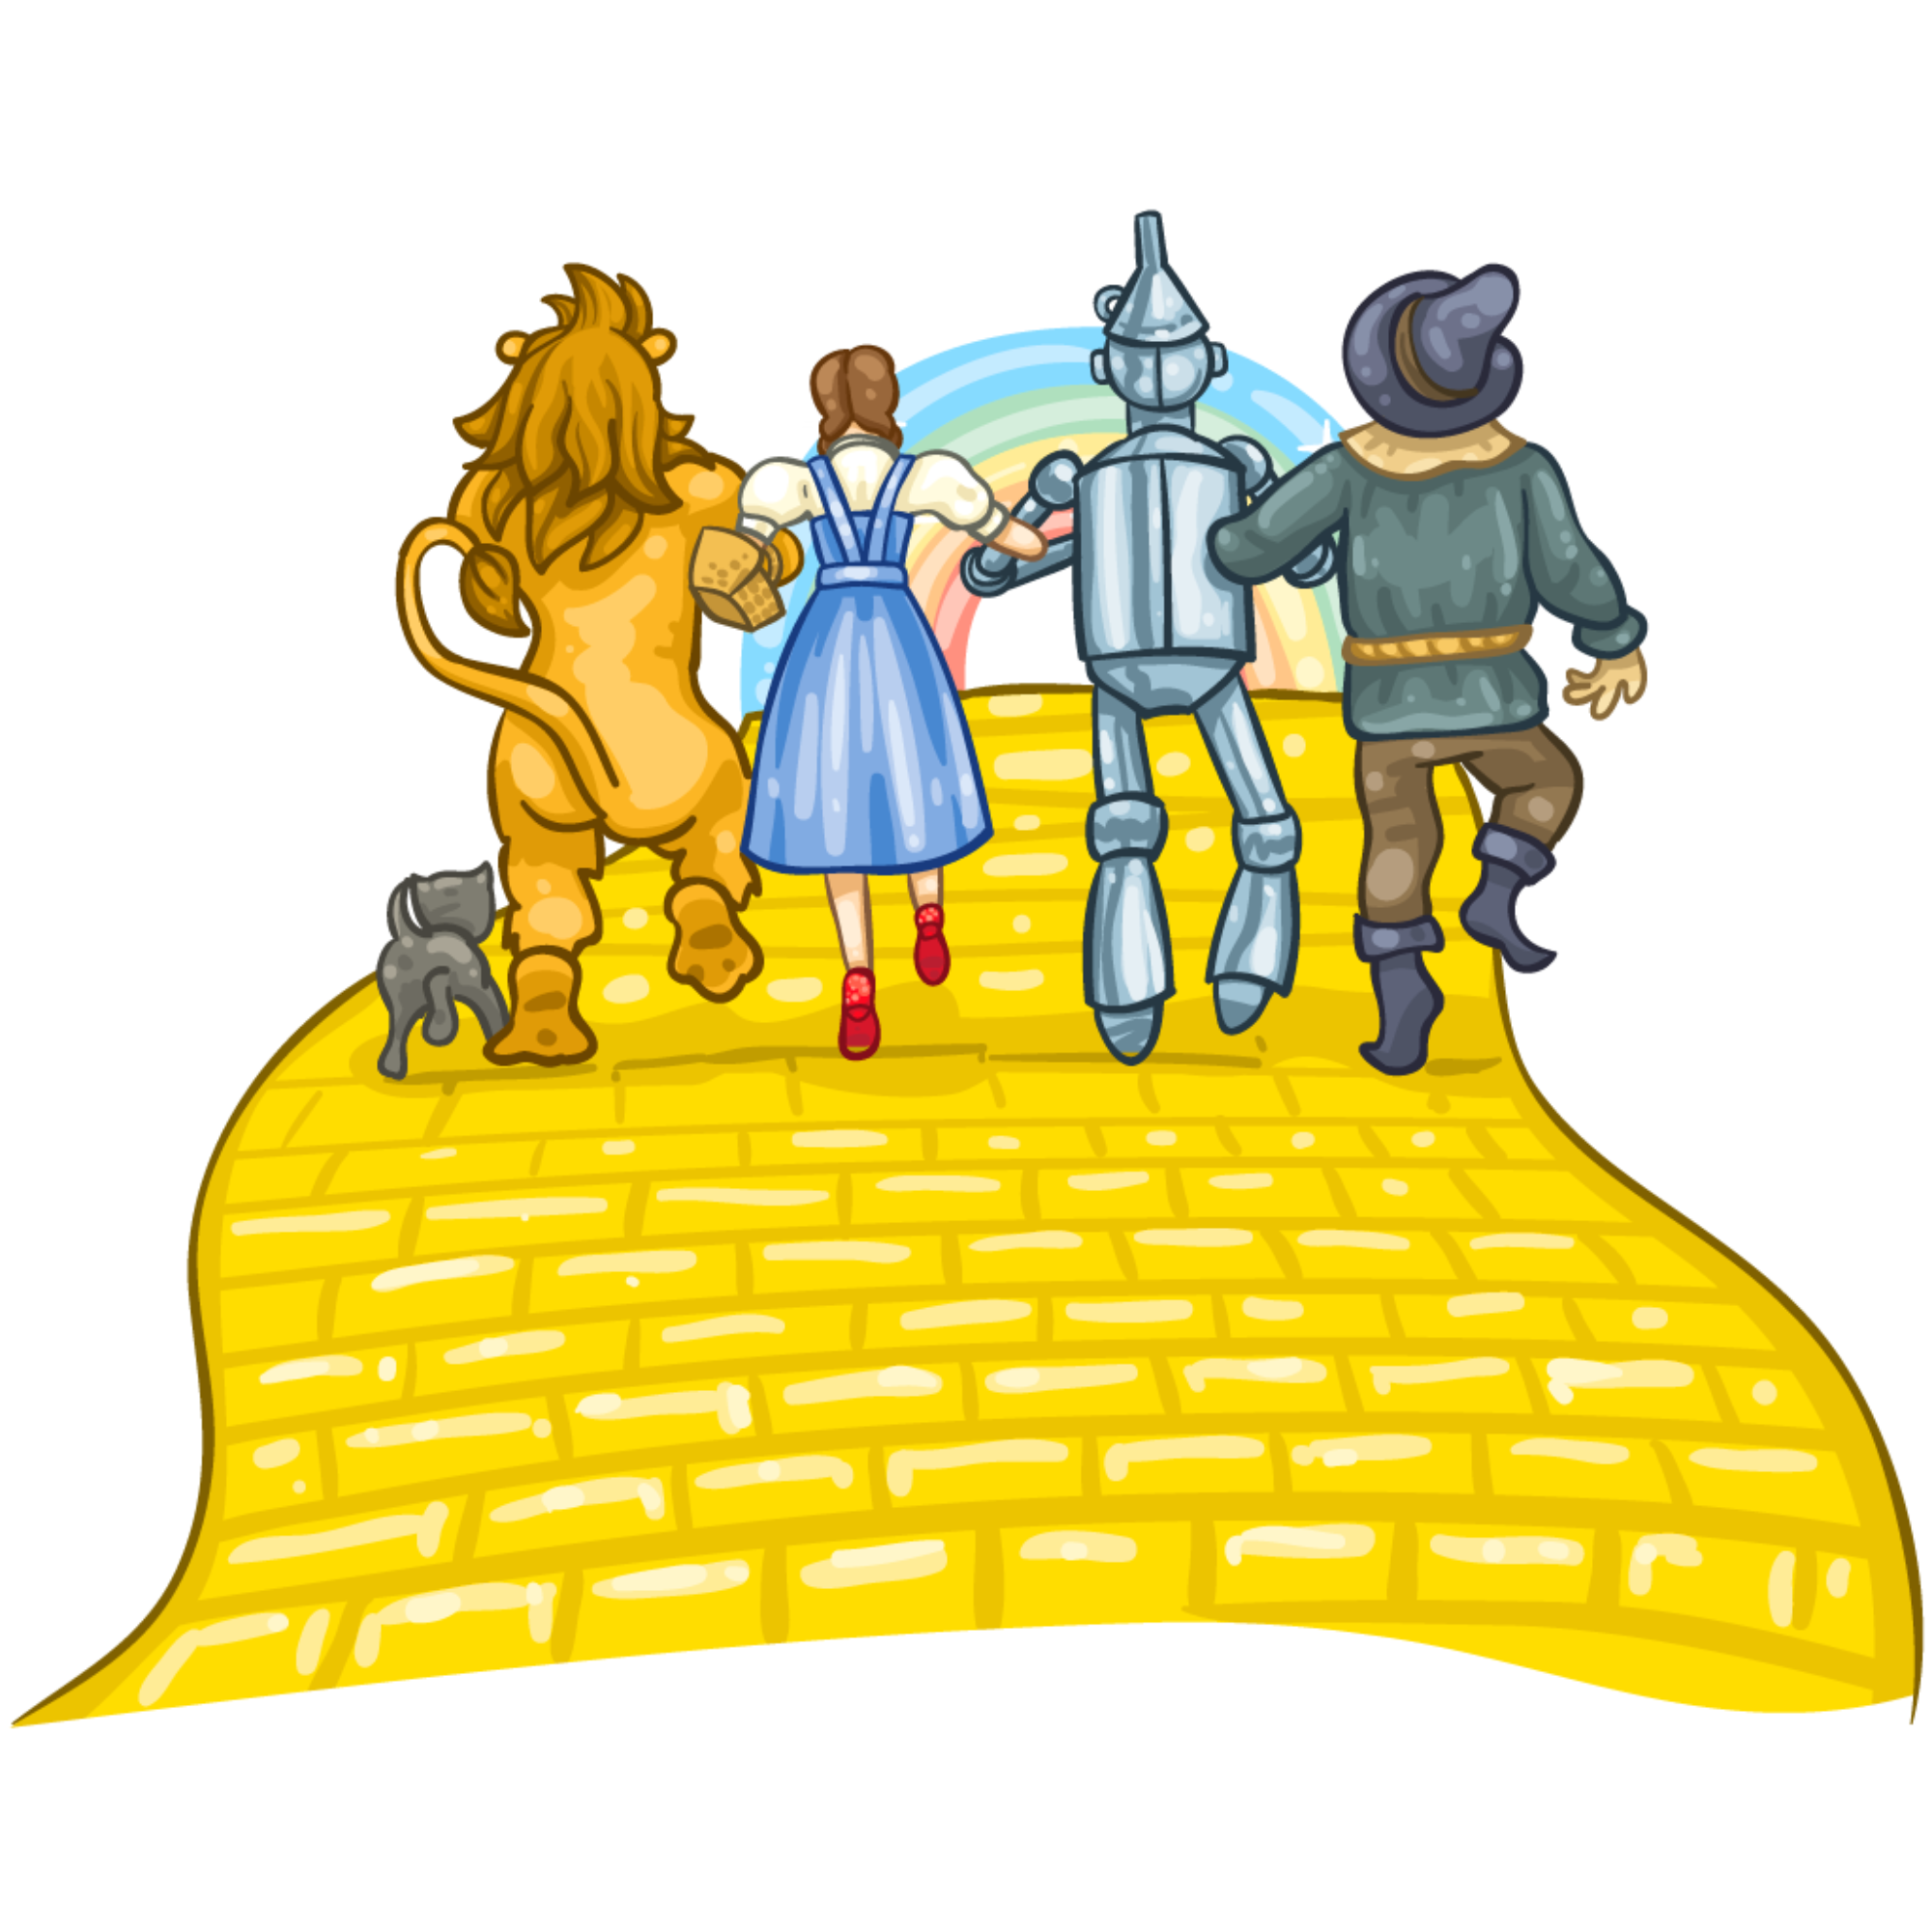 jpg freeuse Wizard of yellow brick. Oz clipart.